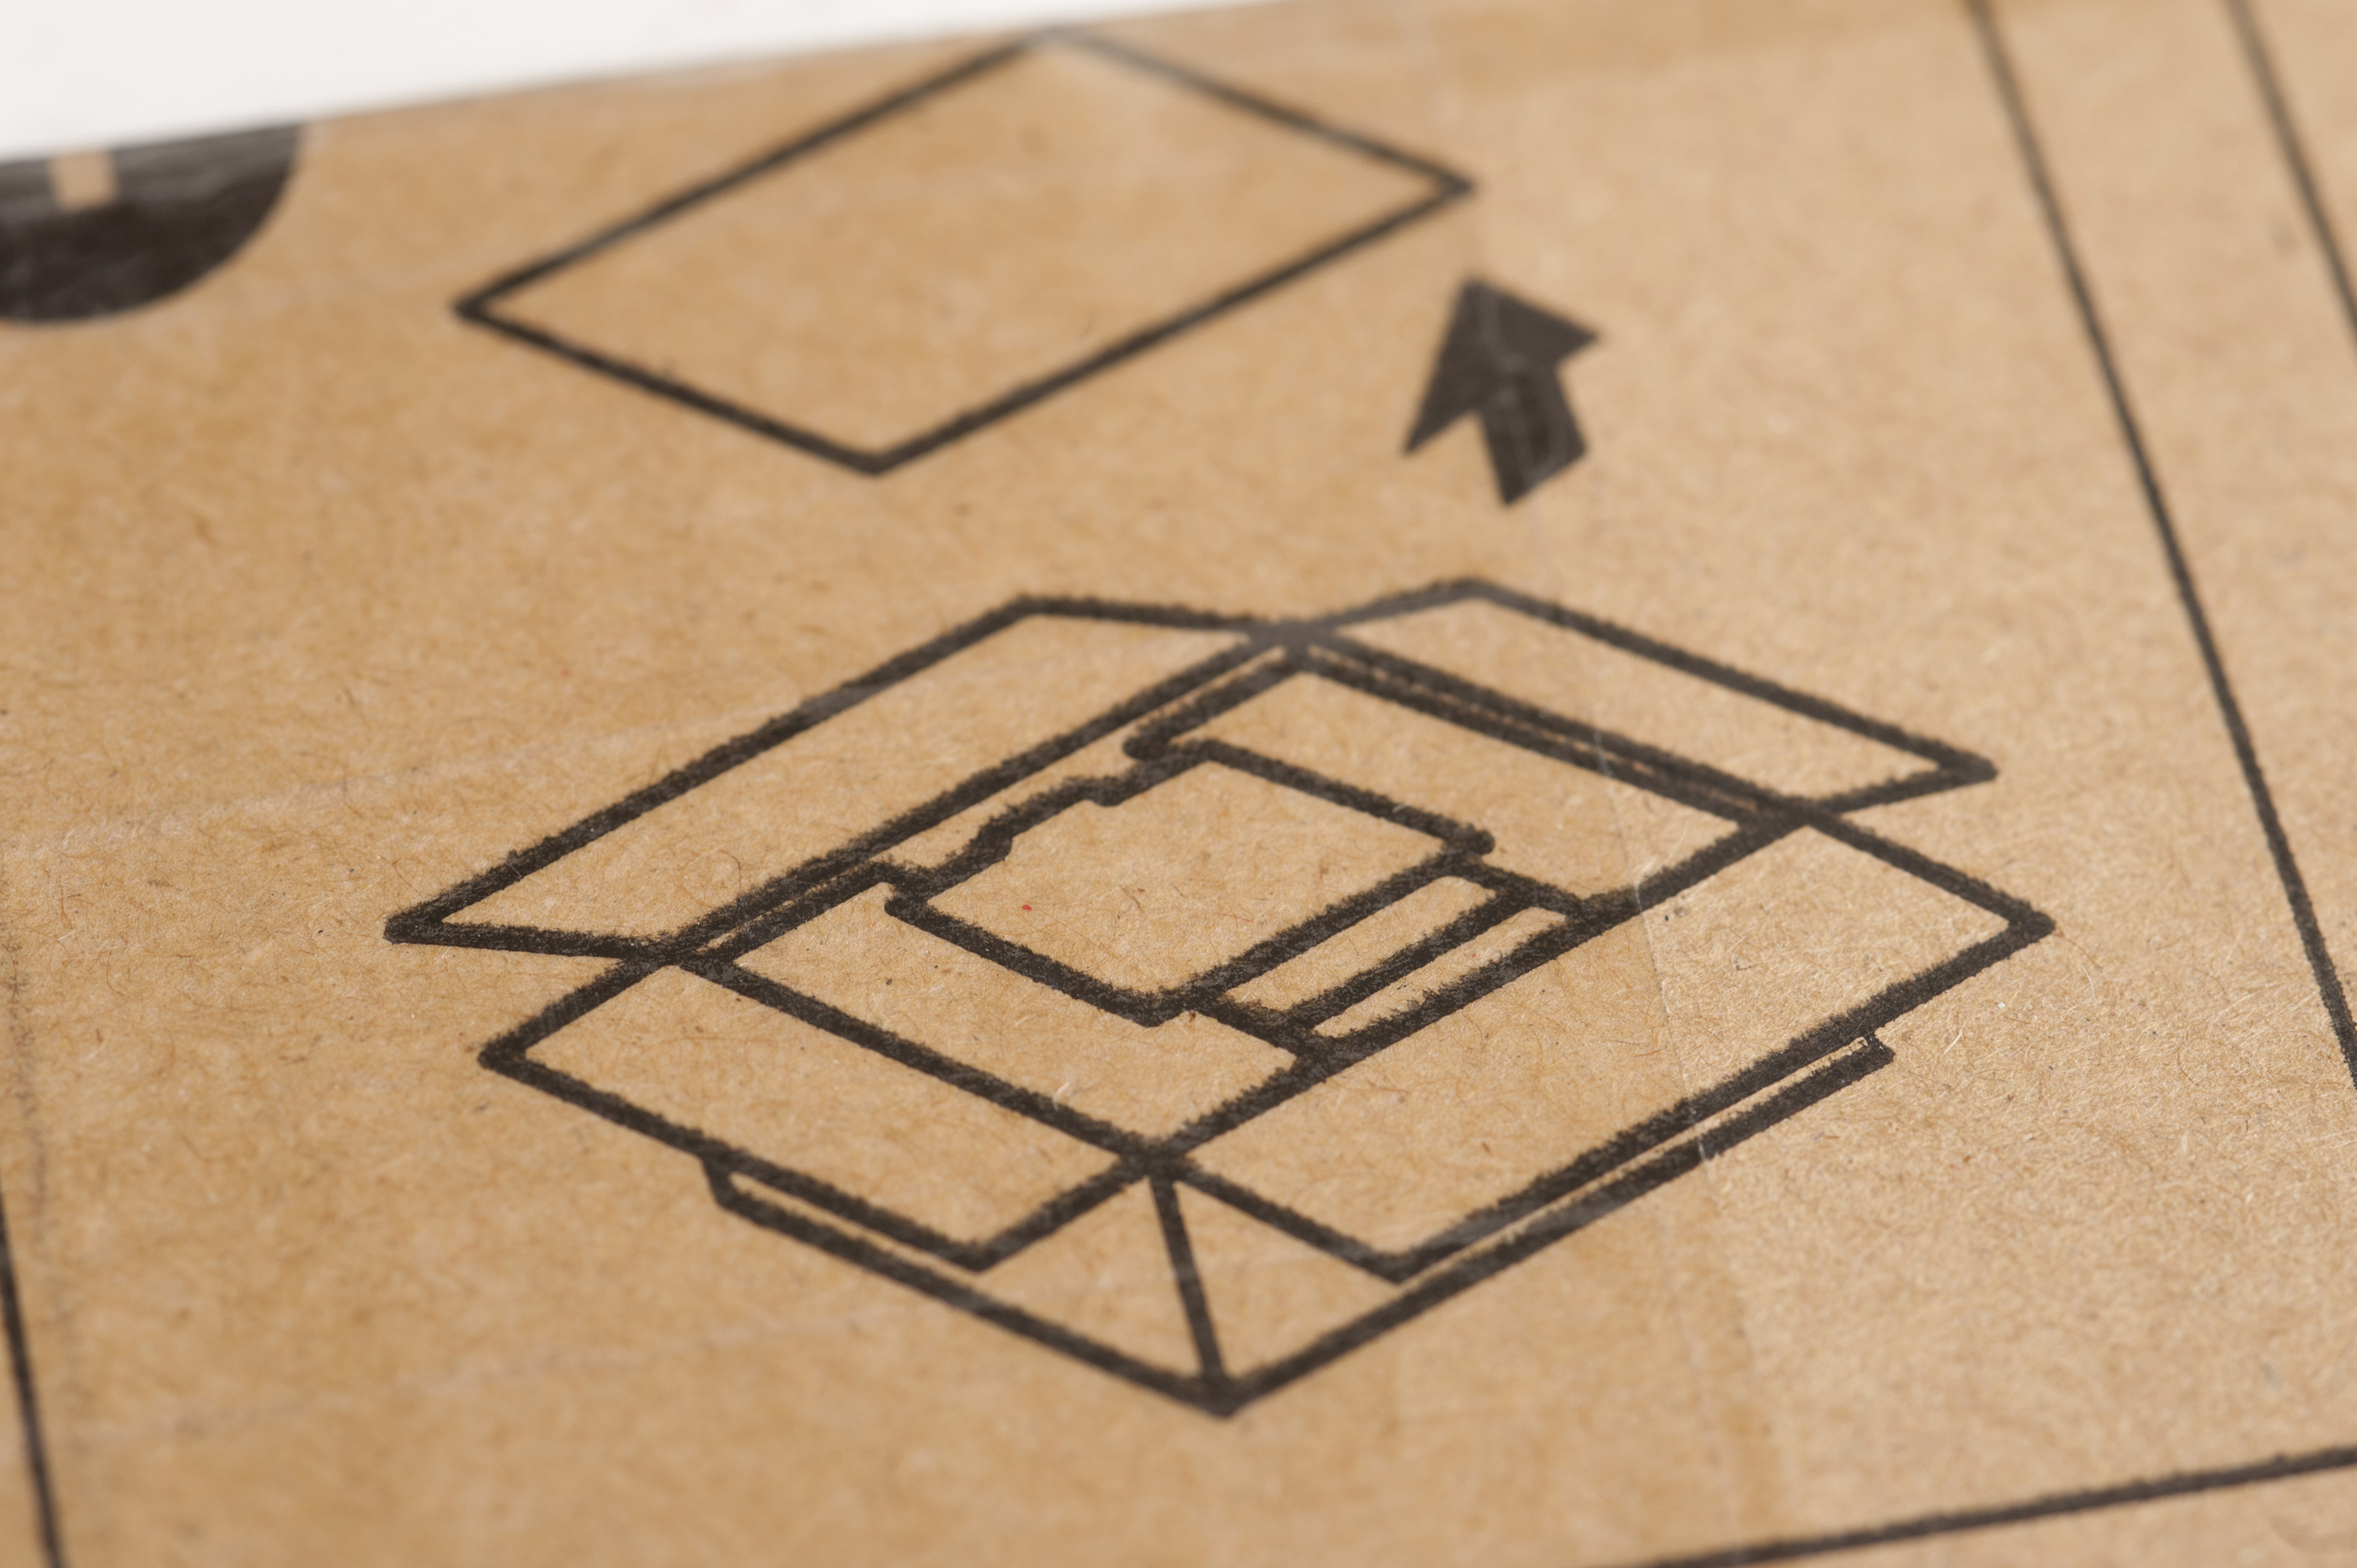 Operating instructions for packaging stamped on a brown cardboard box with a diagram showing how to open it